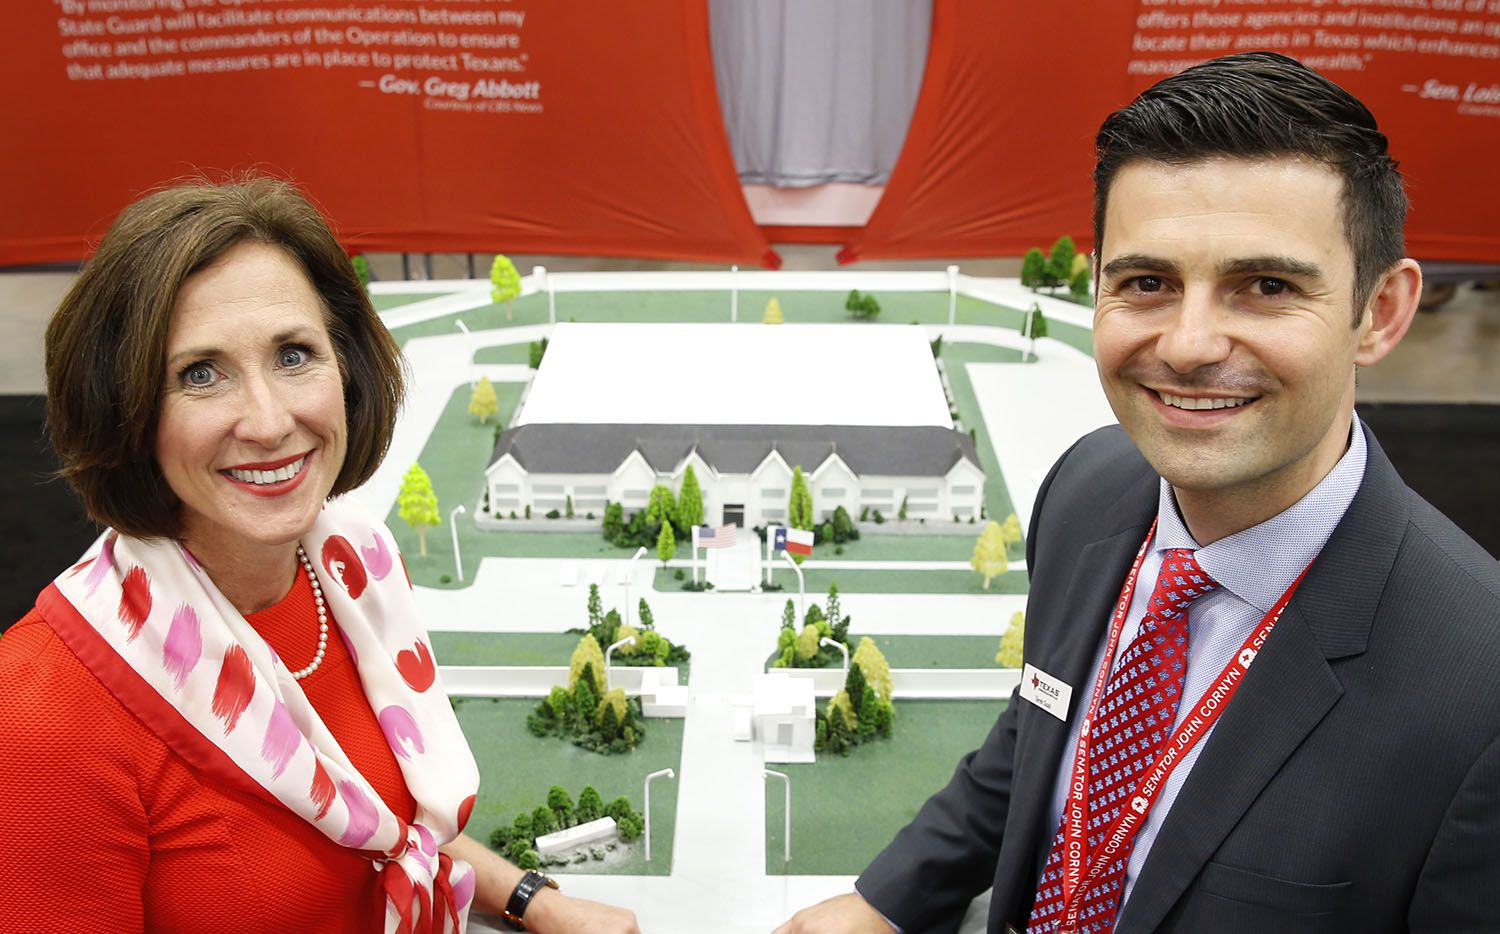 Sen. Lois Kolkhorst, R-Brenham, and Tarek Saab, chief operating officer of Texas Precious Metals, both attending the state GOP convention in Dallas, stand next to an architectural model of a planned Texas Bullion Depository. Lawmakers approved Kolkhorst's bill to create the depository last year. (Vernon Bryant/Staff Photographer)